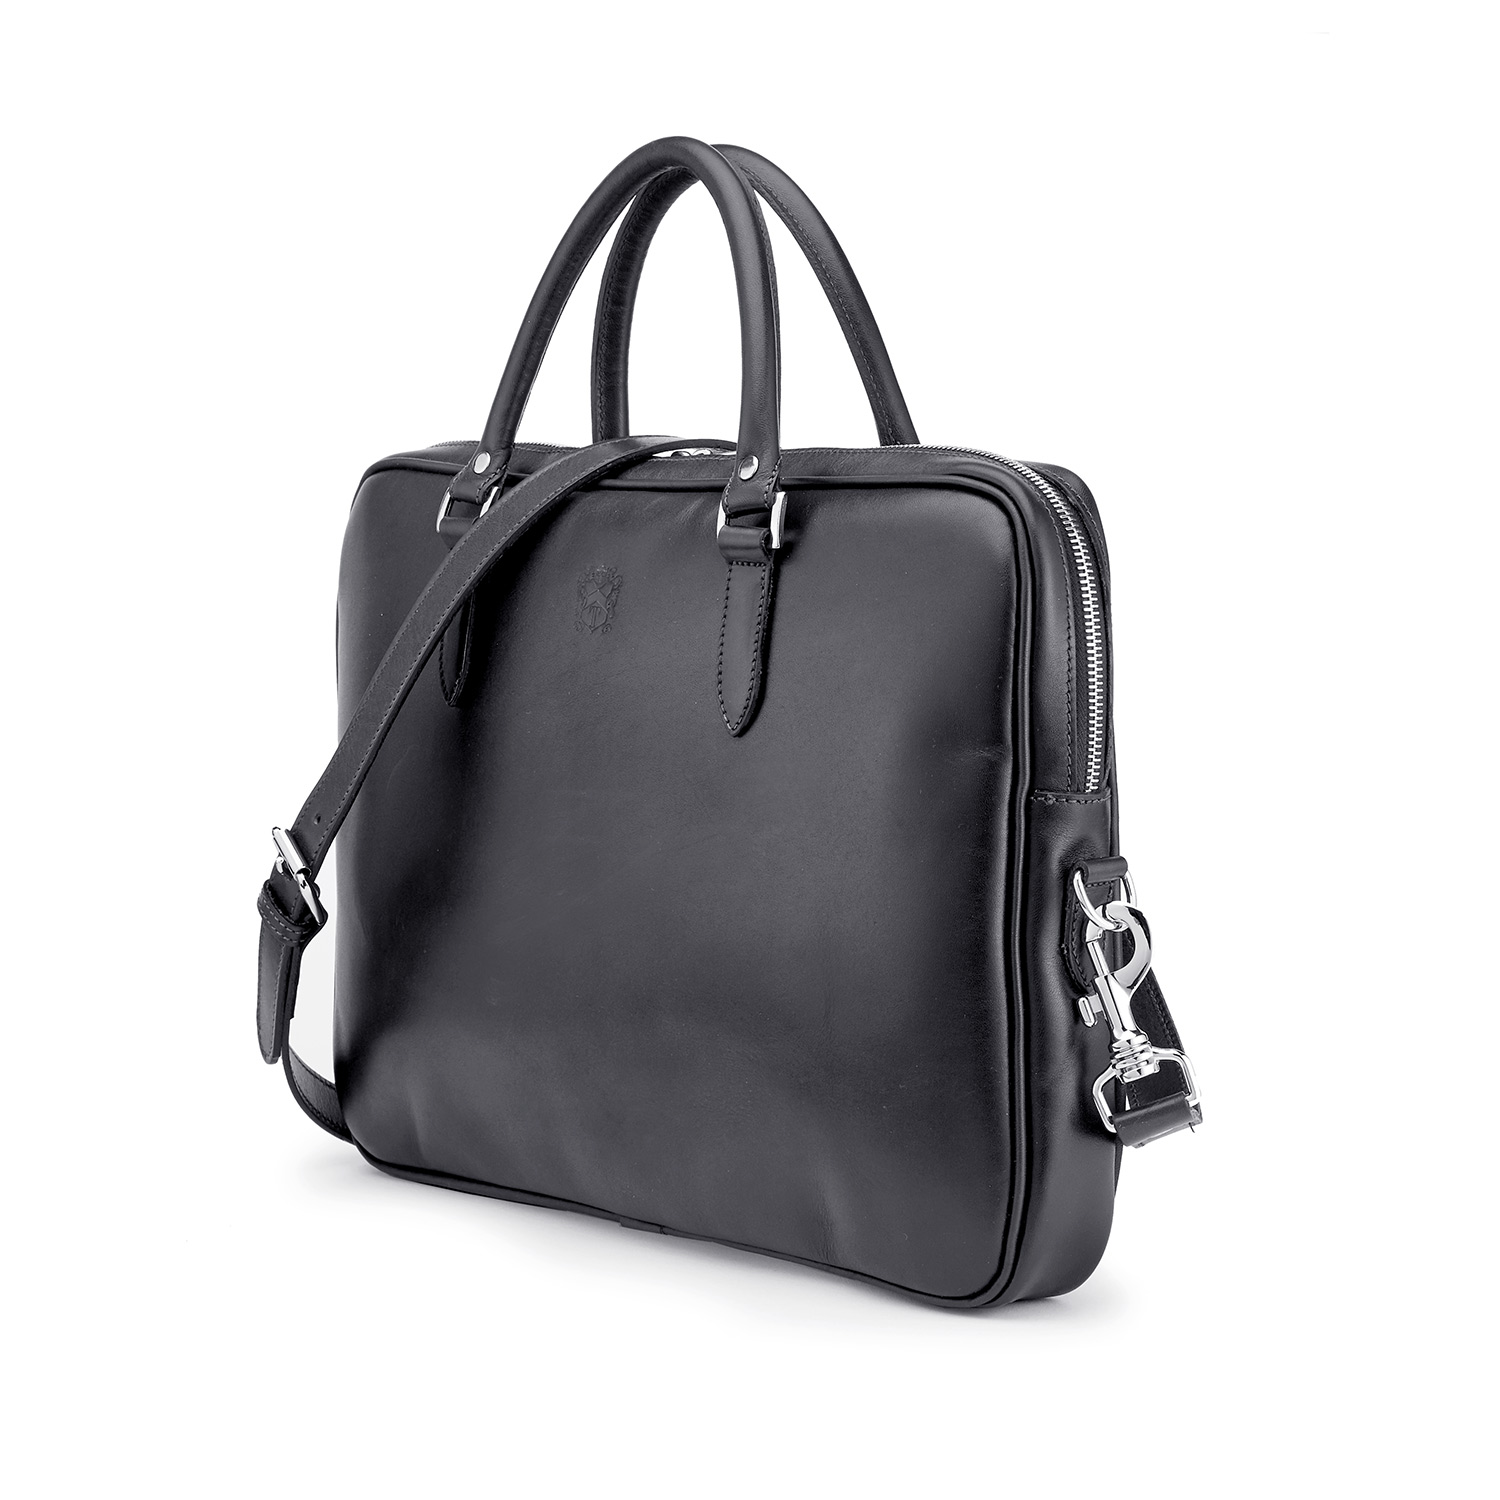 Tusting Piccadilly Leather Briefcase in Black Angle with Strap